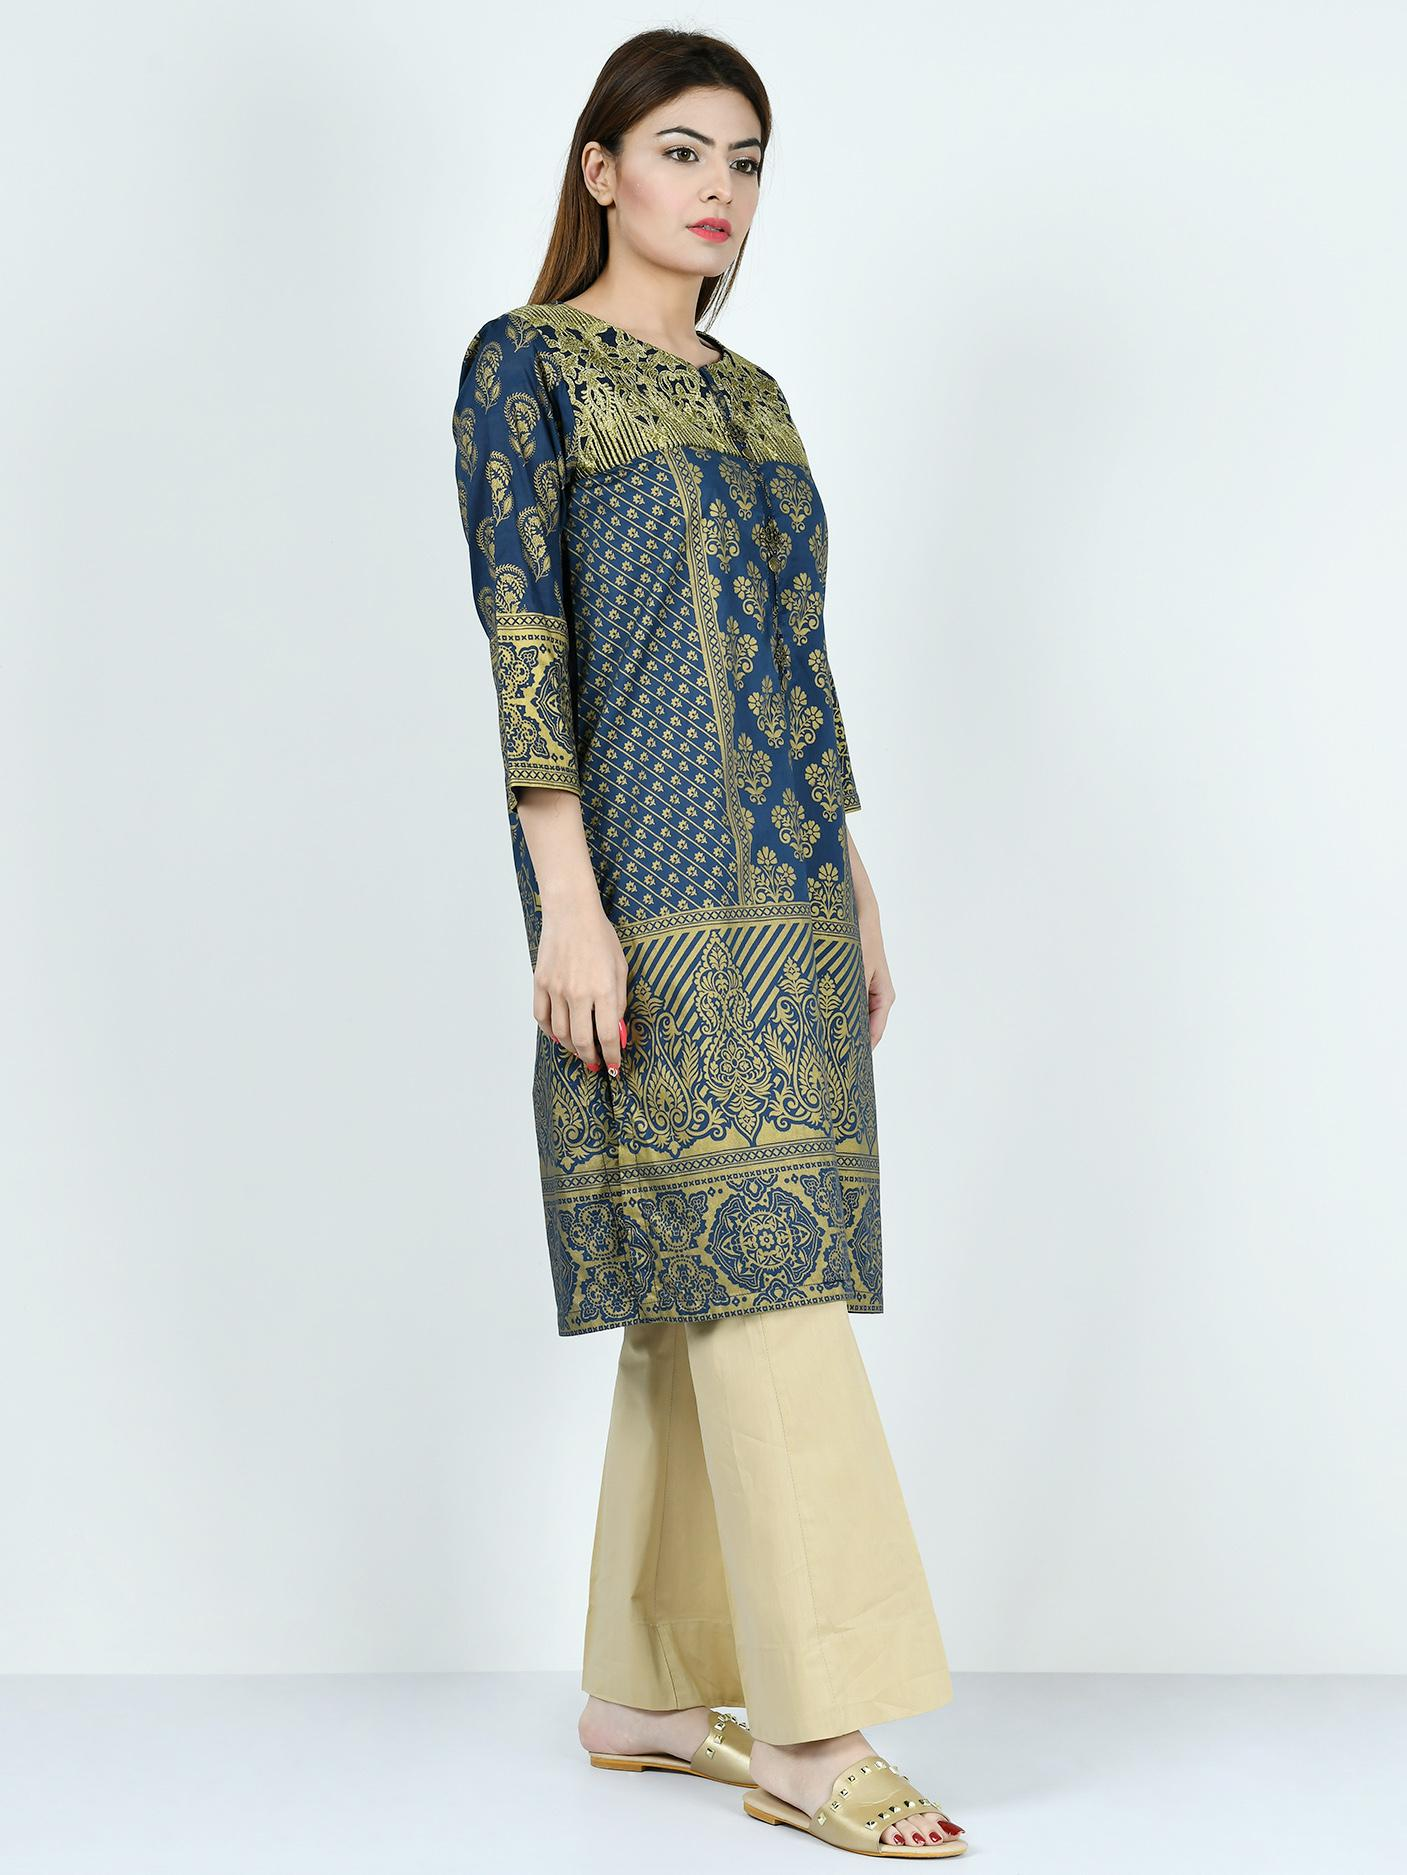 LimeLight Summer Collection 2019 Peacock Blue Stitched  Lawn Shirt For Women P2808-LRL-PBU